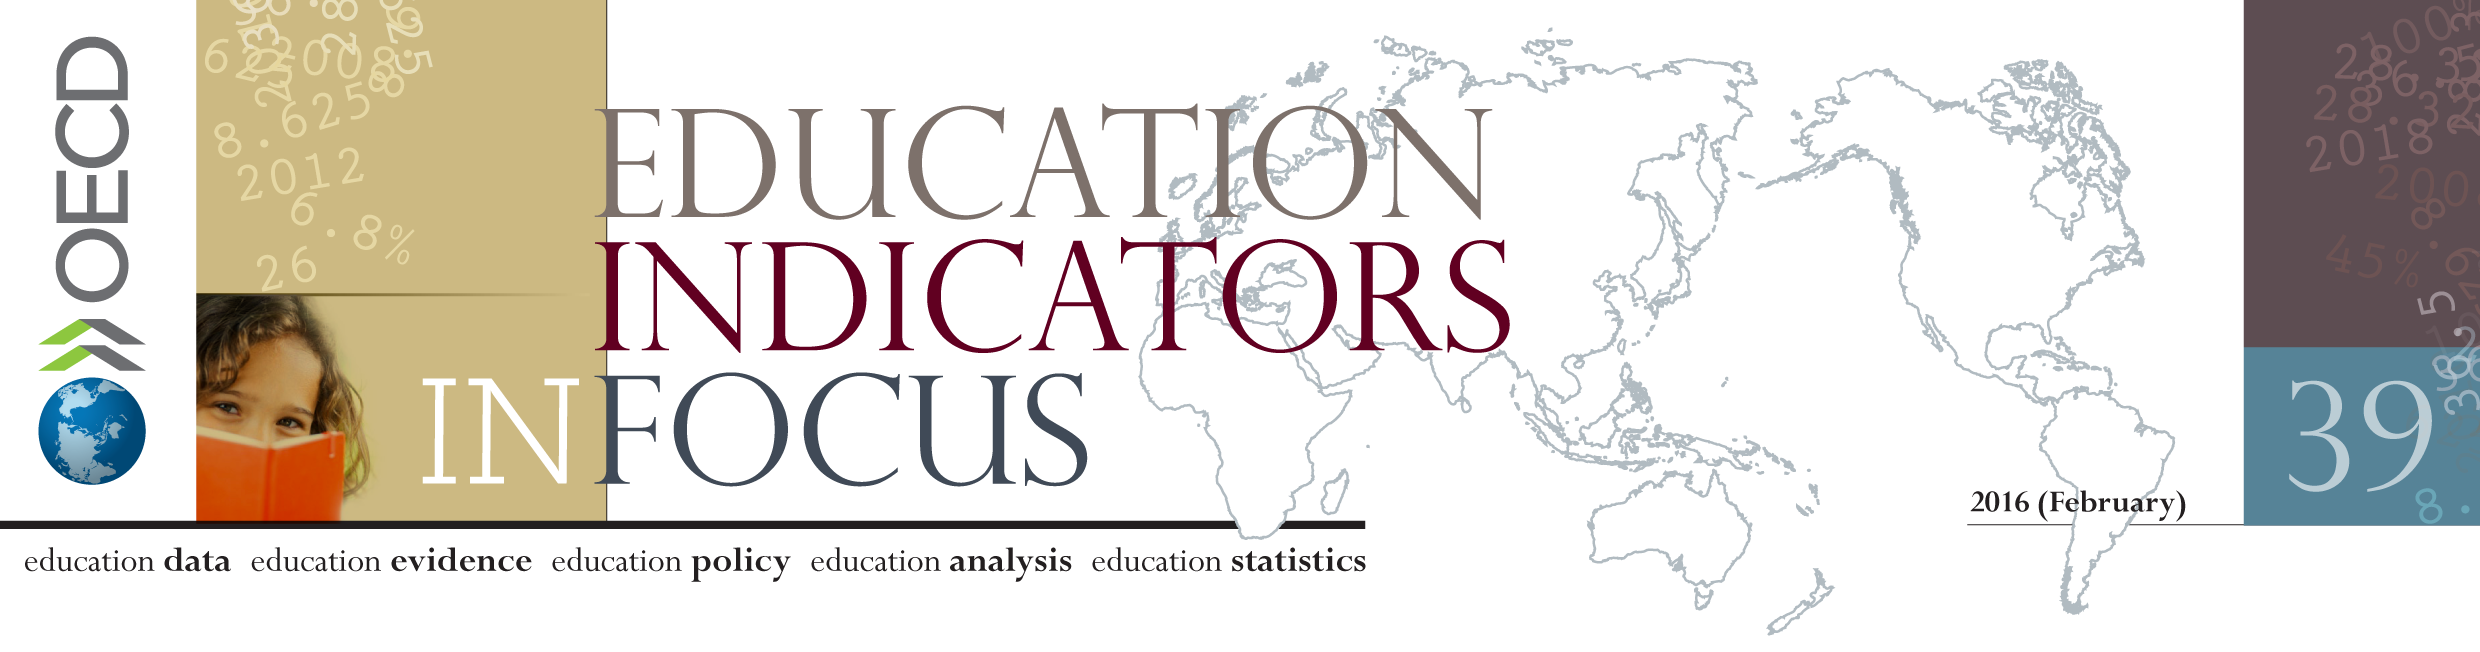 OECD Education indicators in focus - 2016/39 - banner